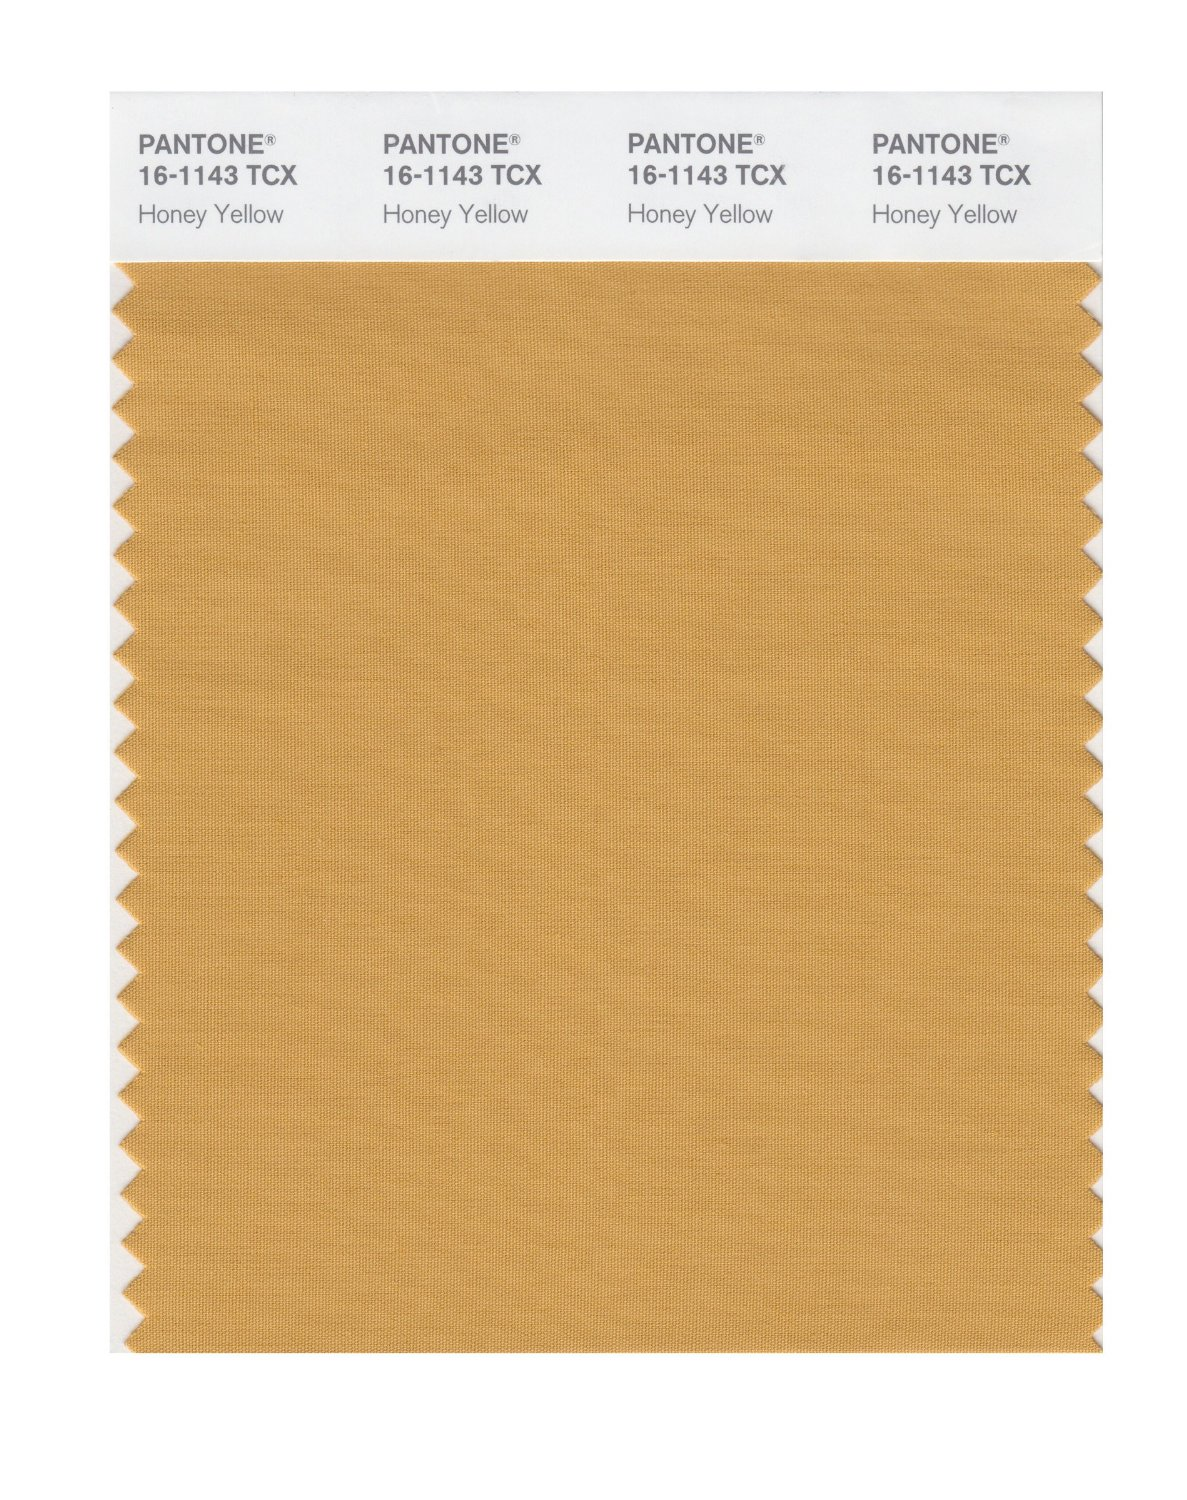 Pantone Smart Swatch 16-1143 Honey Yellow